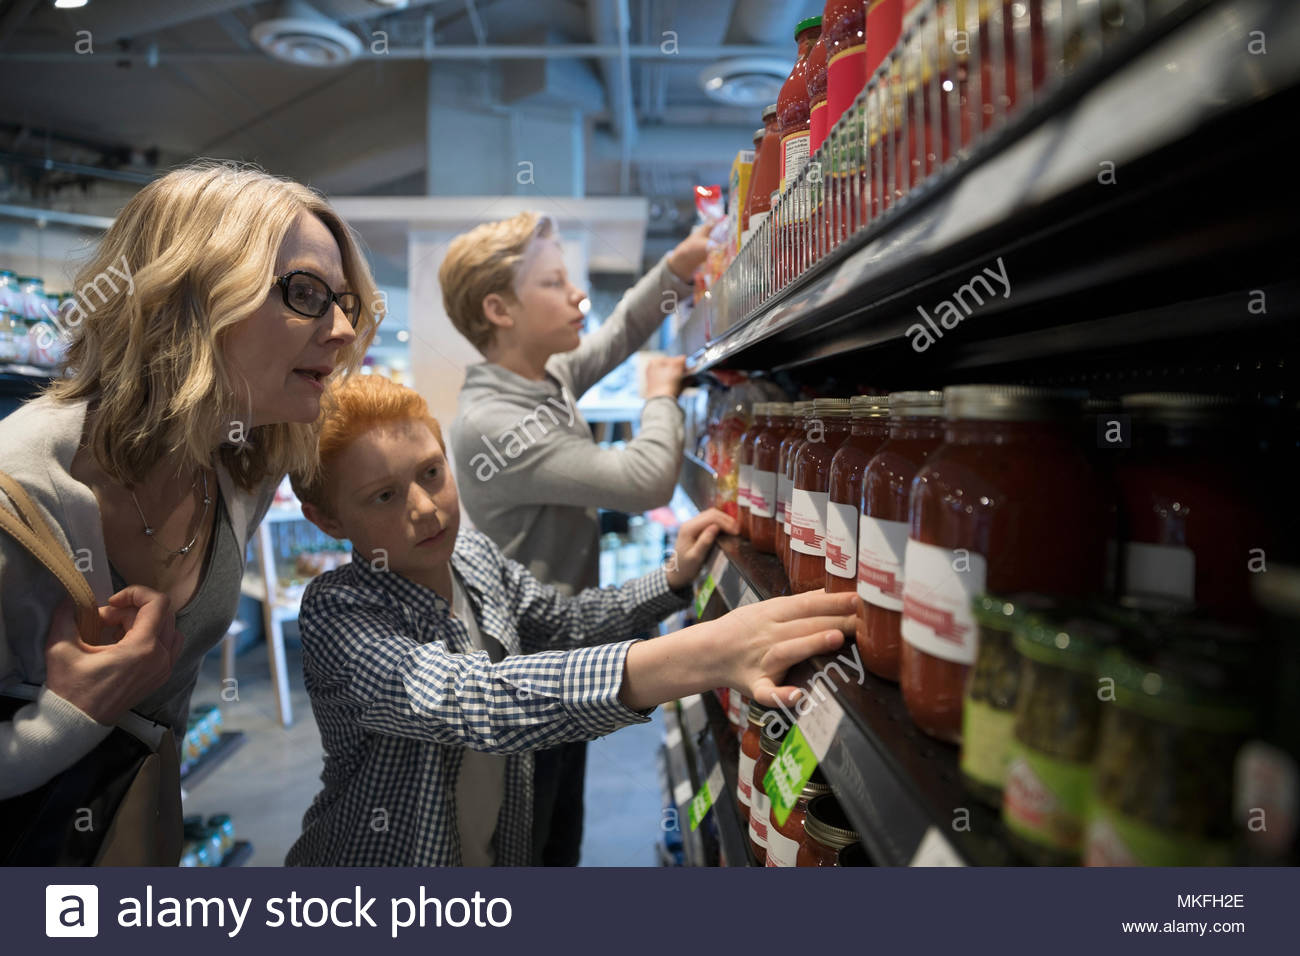 Mother and son grocery shopping, picking out spaghetti sauce in market - Stock Image